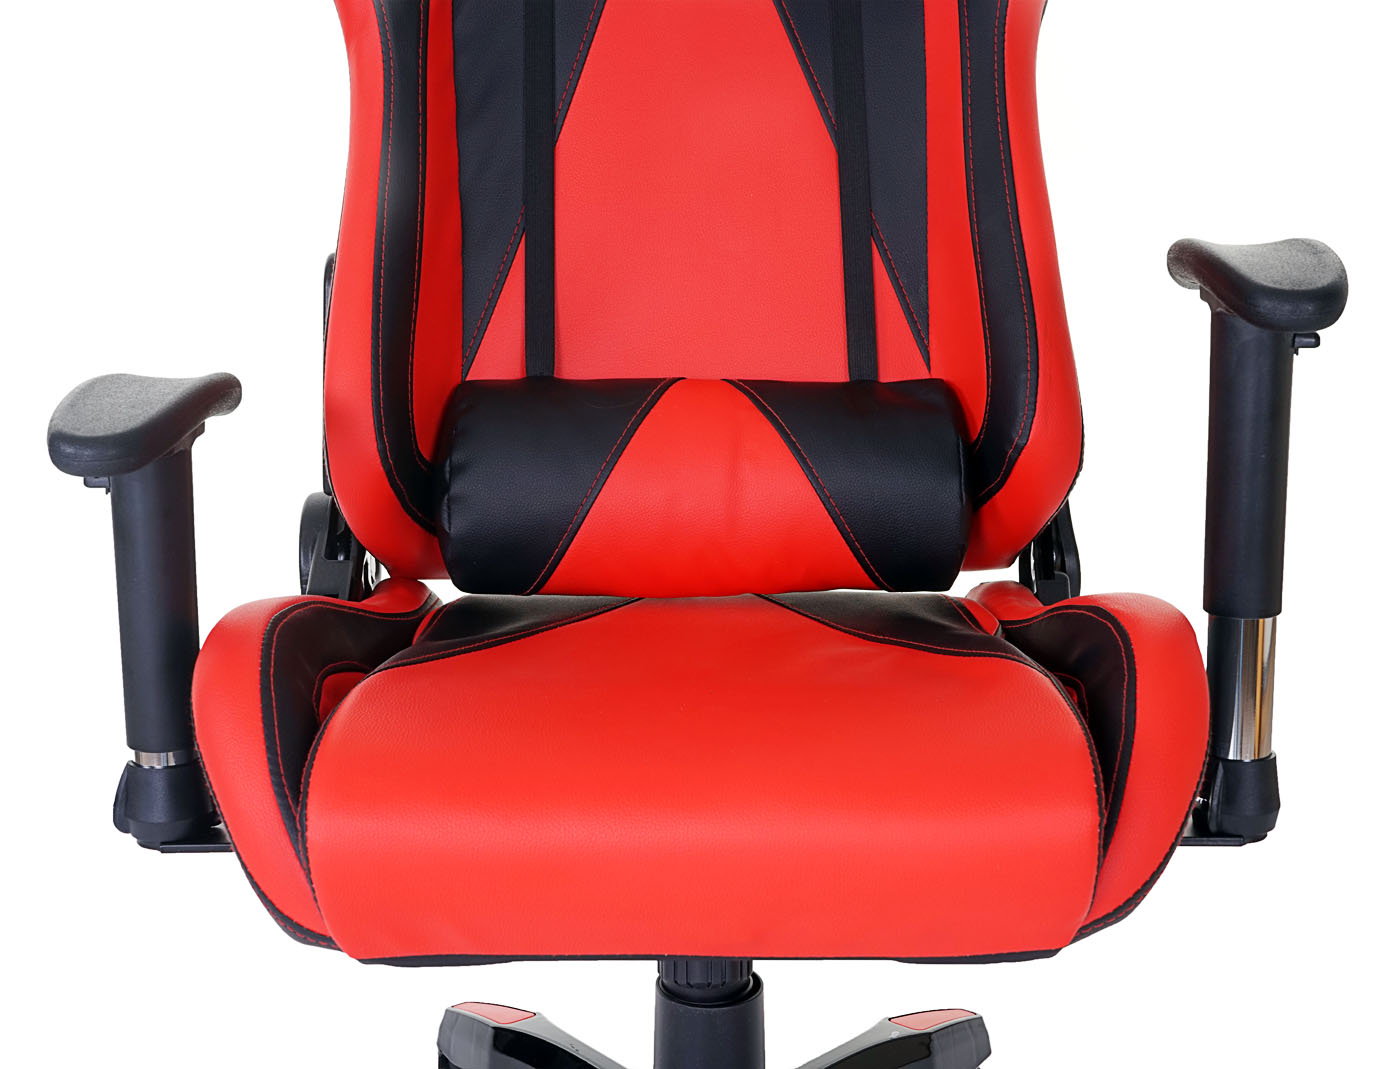 profi b rostuhl racing t682 xxl 150kg belastbar kunstleder rot. Black Bedroom Furniture Sets. Home Design Ideas